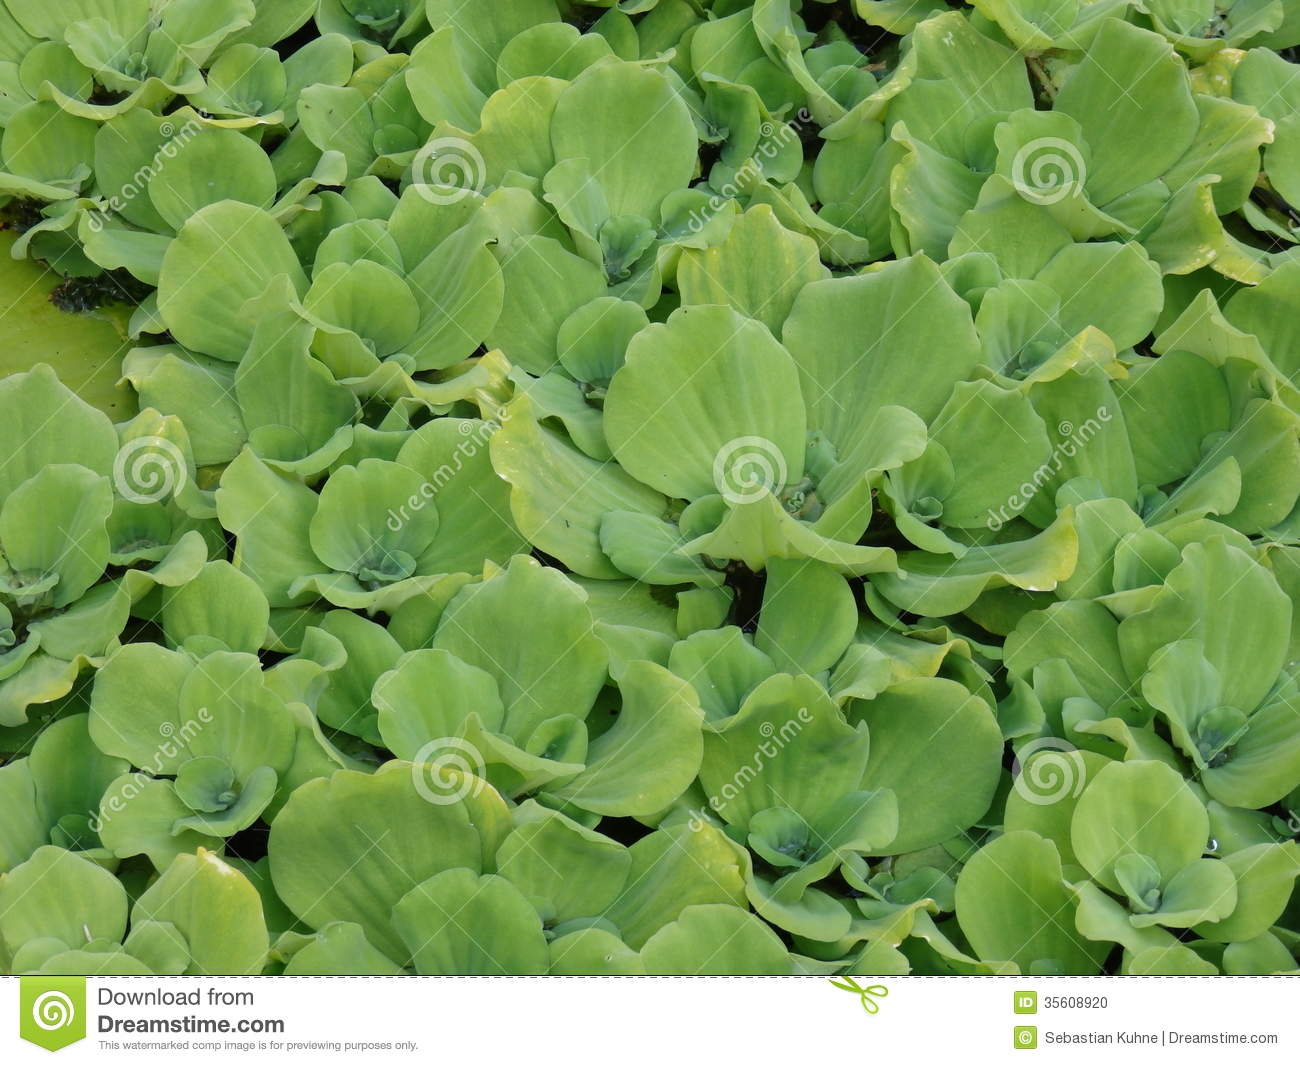 Water Lettuce Facts, Care & Planting Guide (Pistia ...